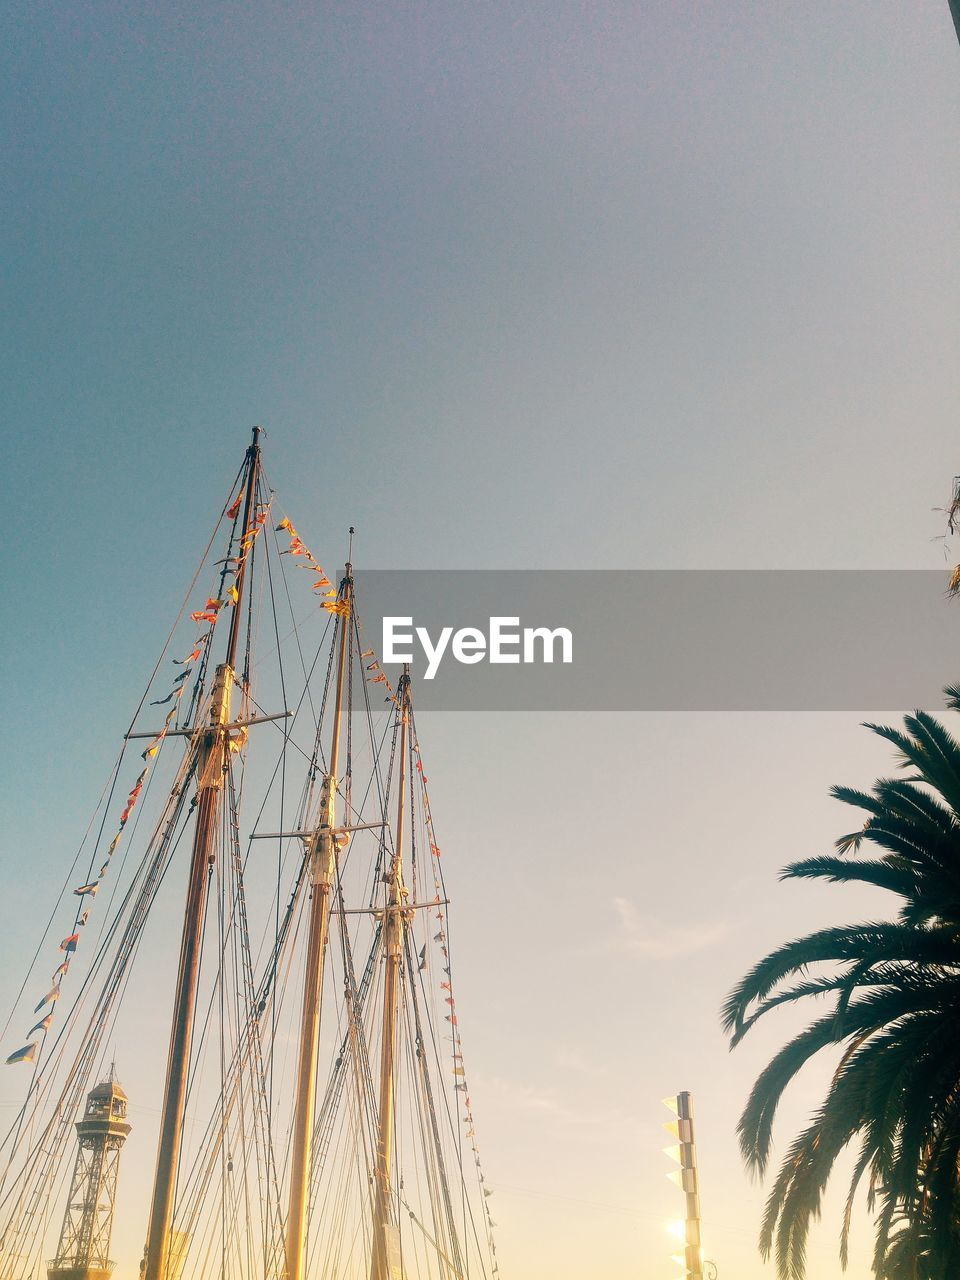 sky, sailboat, nautical vessel, transportation, mode of transportation, nature, mast, pole, no people, low angle view, water, sunset, sea, ship, copy space, clear sky, outdoors, harbor, tree, sailing, rigging